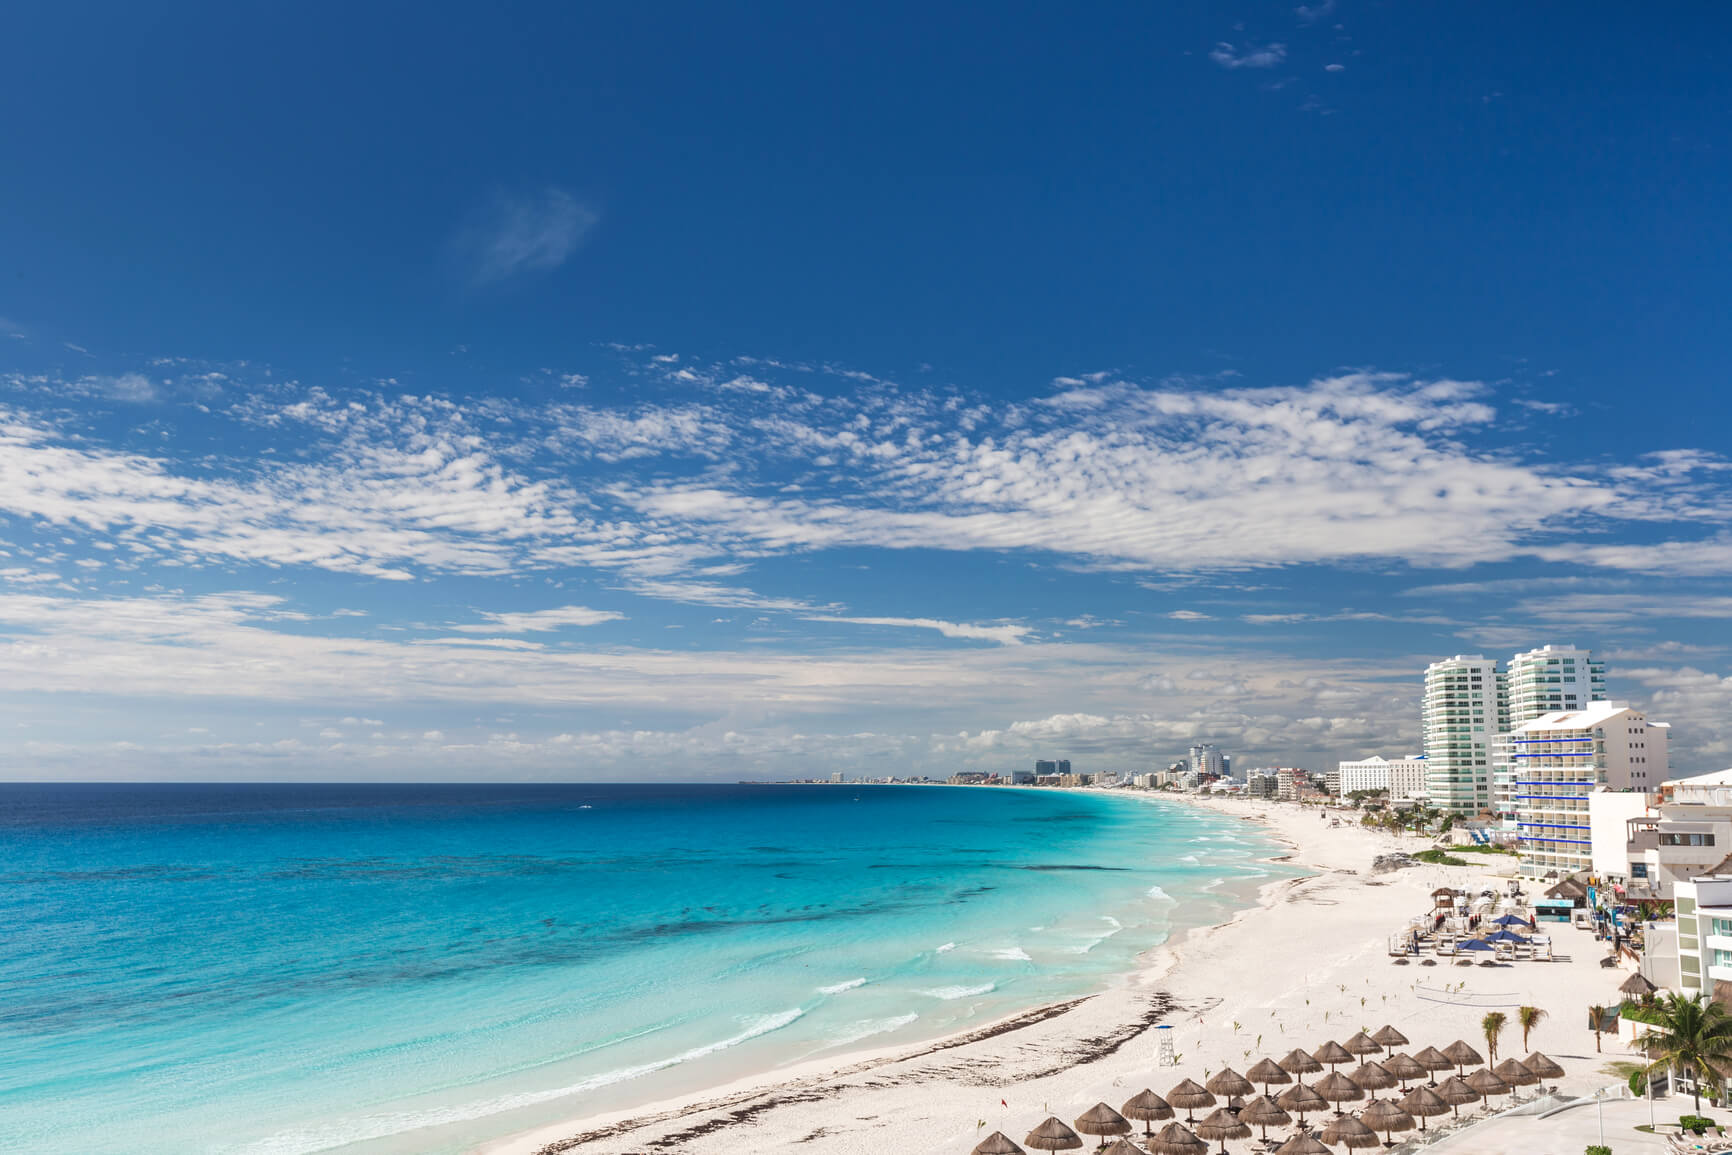 Seattle to Cancun, Mexico for only $280 roundtrip